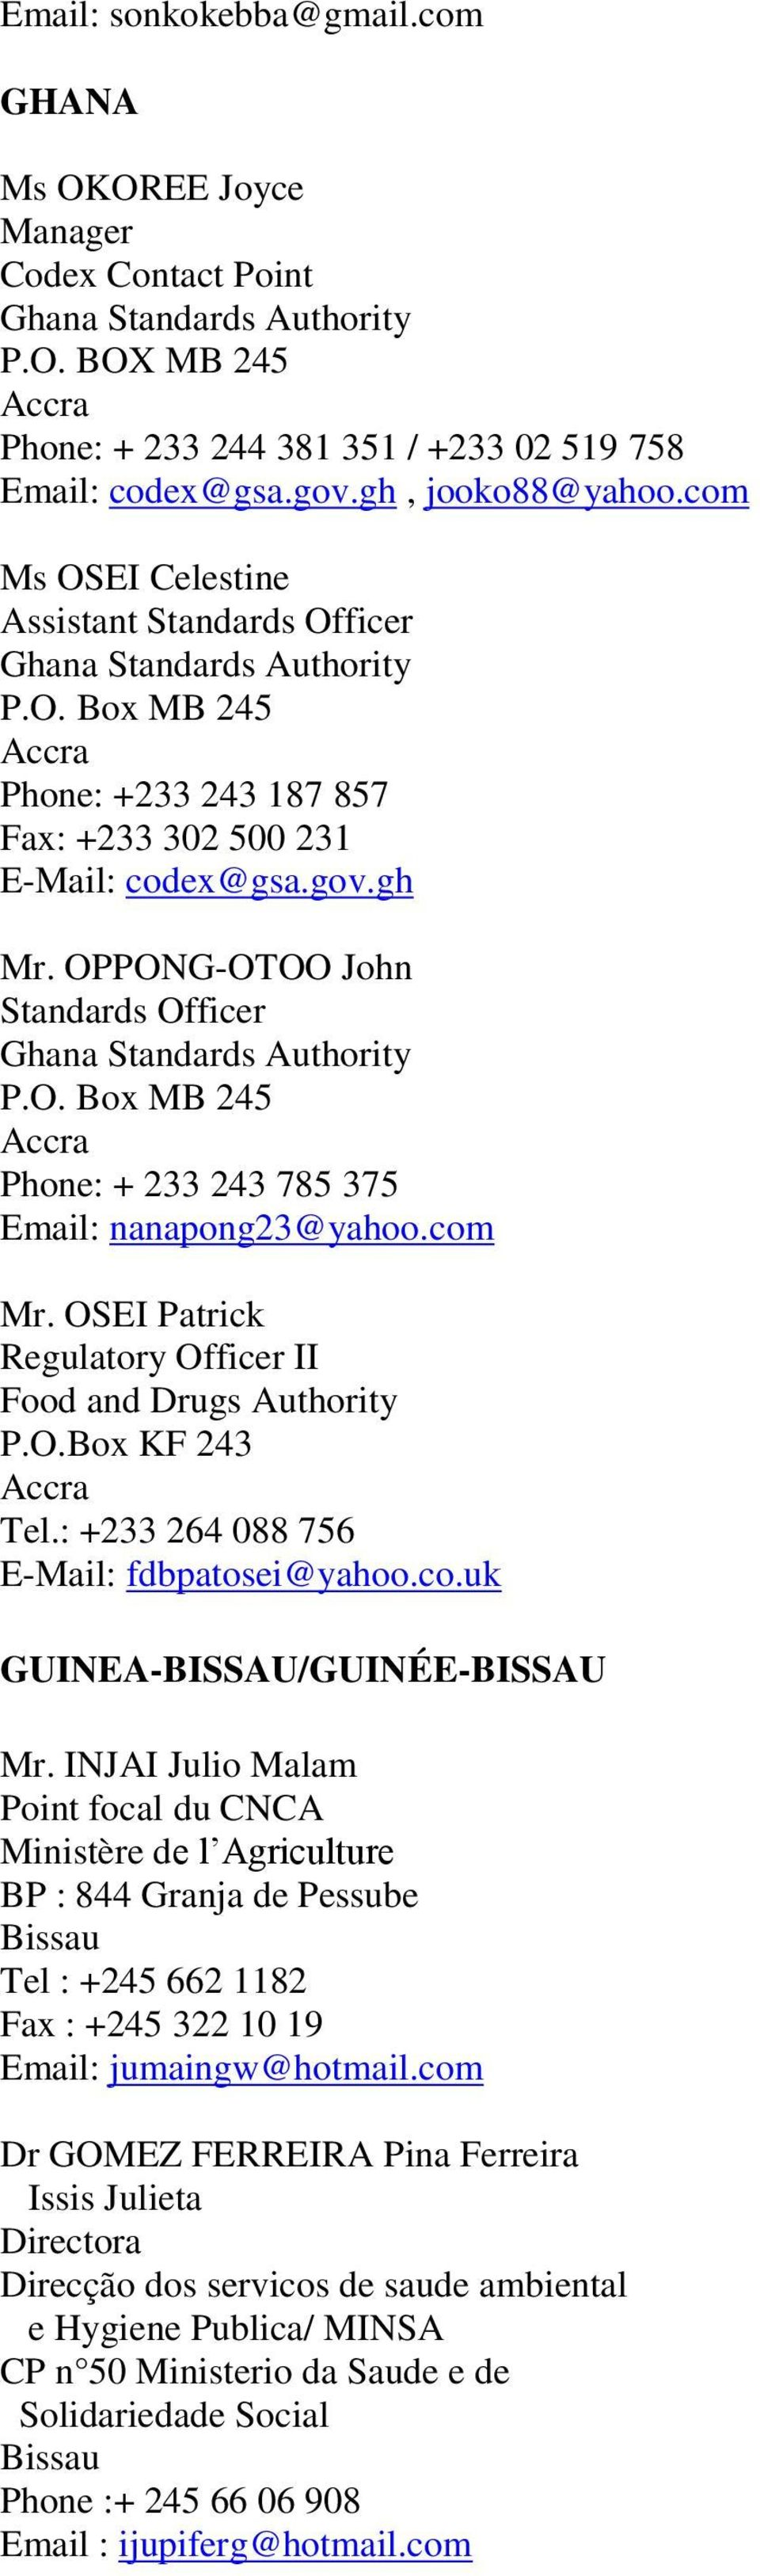 OPPONG-OTOO John Standards Officer Ghana Standards Authority P.O. Box MB 245 Accra Phone: + 233 243 785 375 Email: nanapong23@yahoo.com Mr.